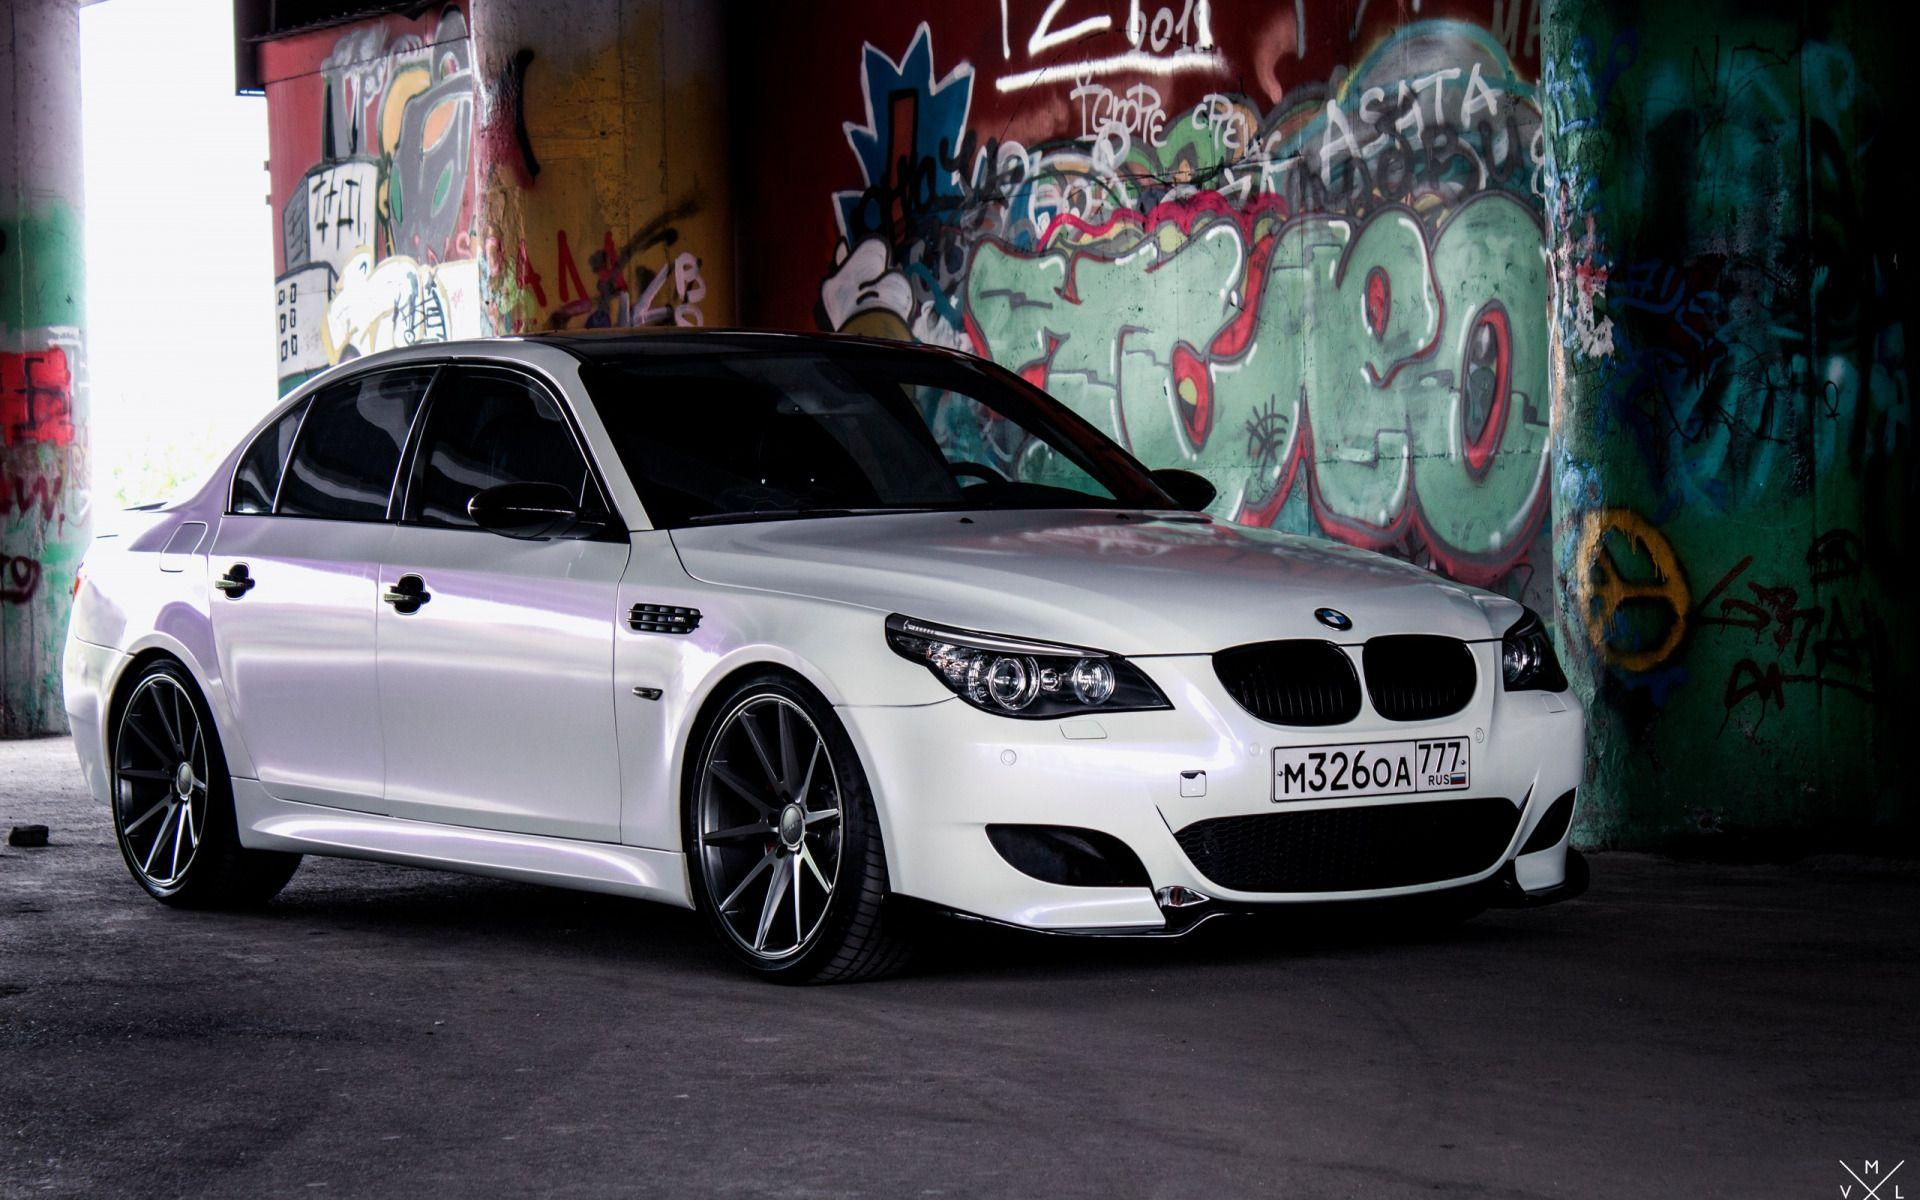 Download wallpaper BMW, E60, m5, section bmw in resolution 1920x1200